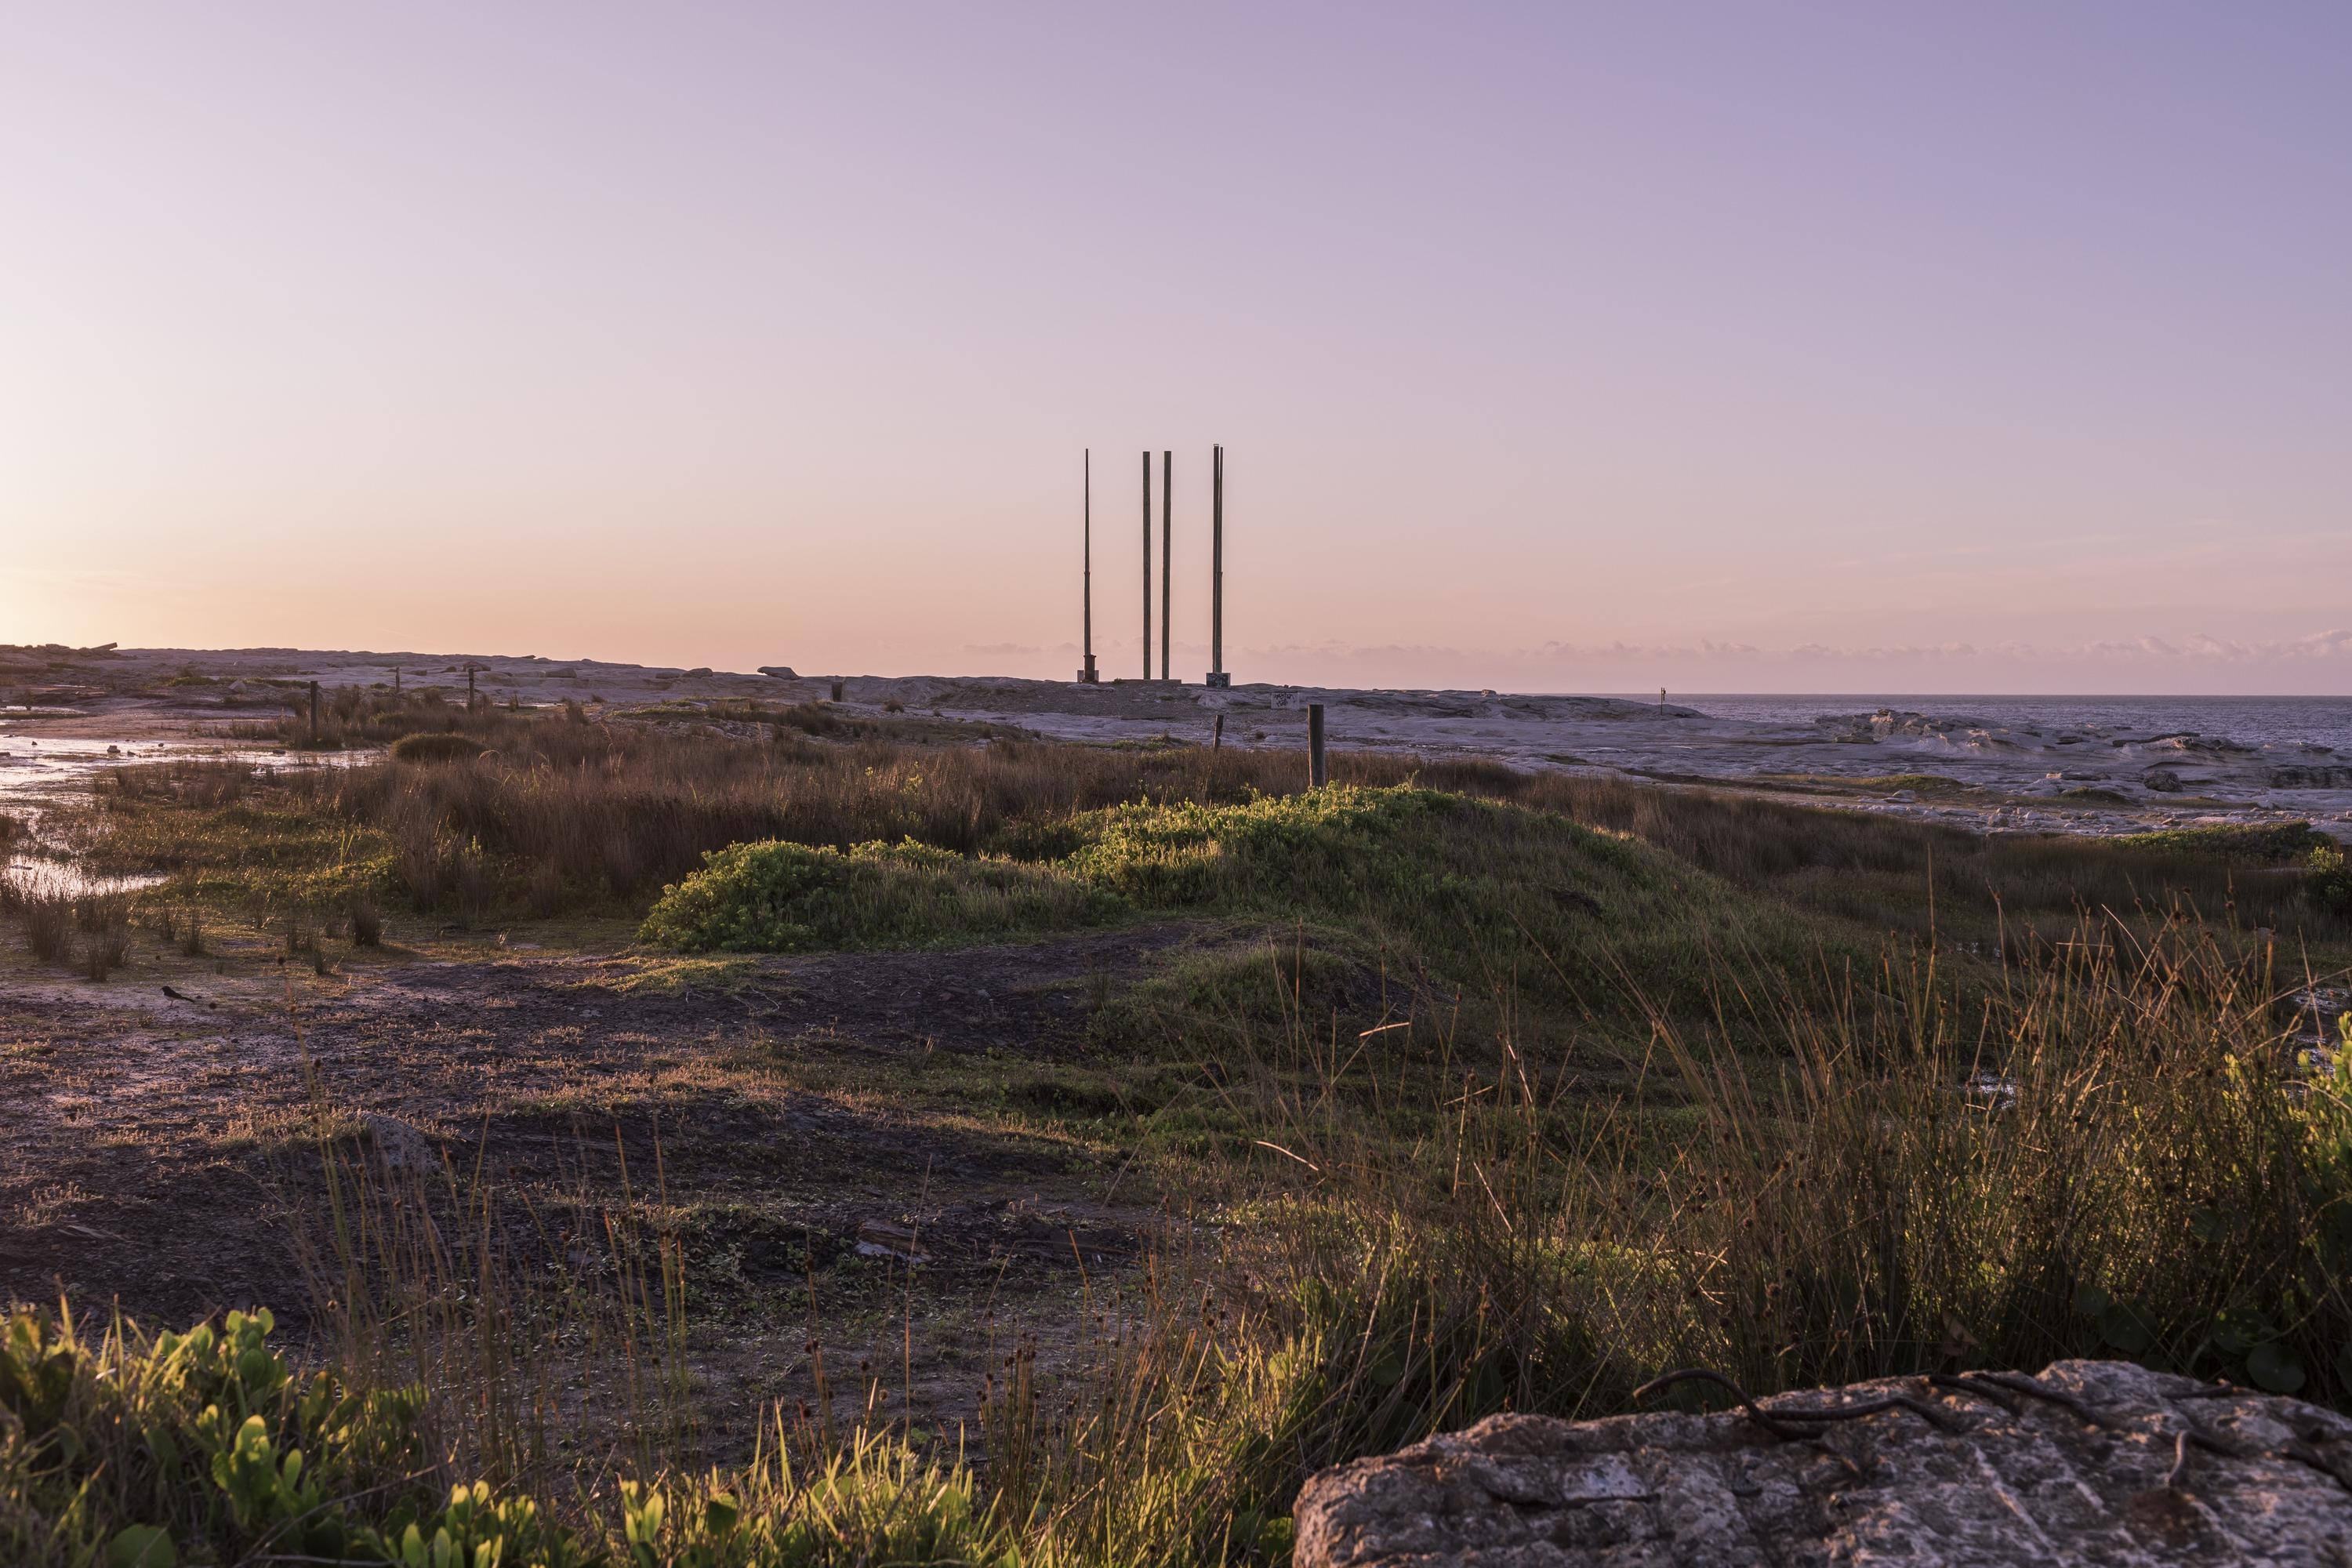 First light, looking towards Potter's Point, site to the clifftop sewage outlet